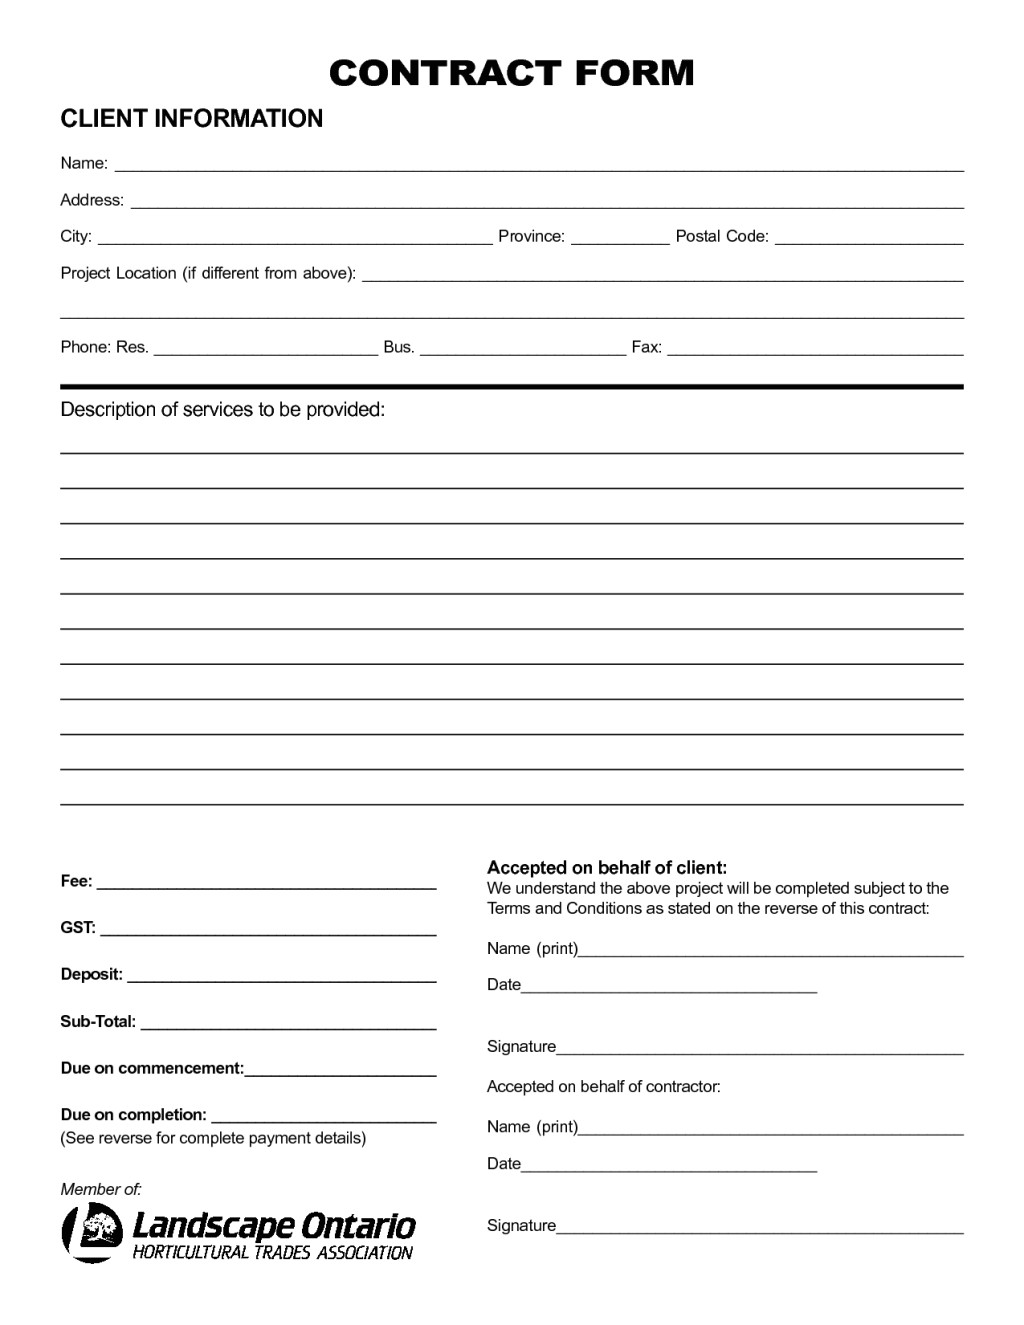 nice sample of printable blank contract template with client information and description of service